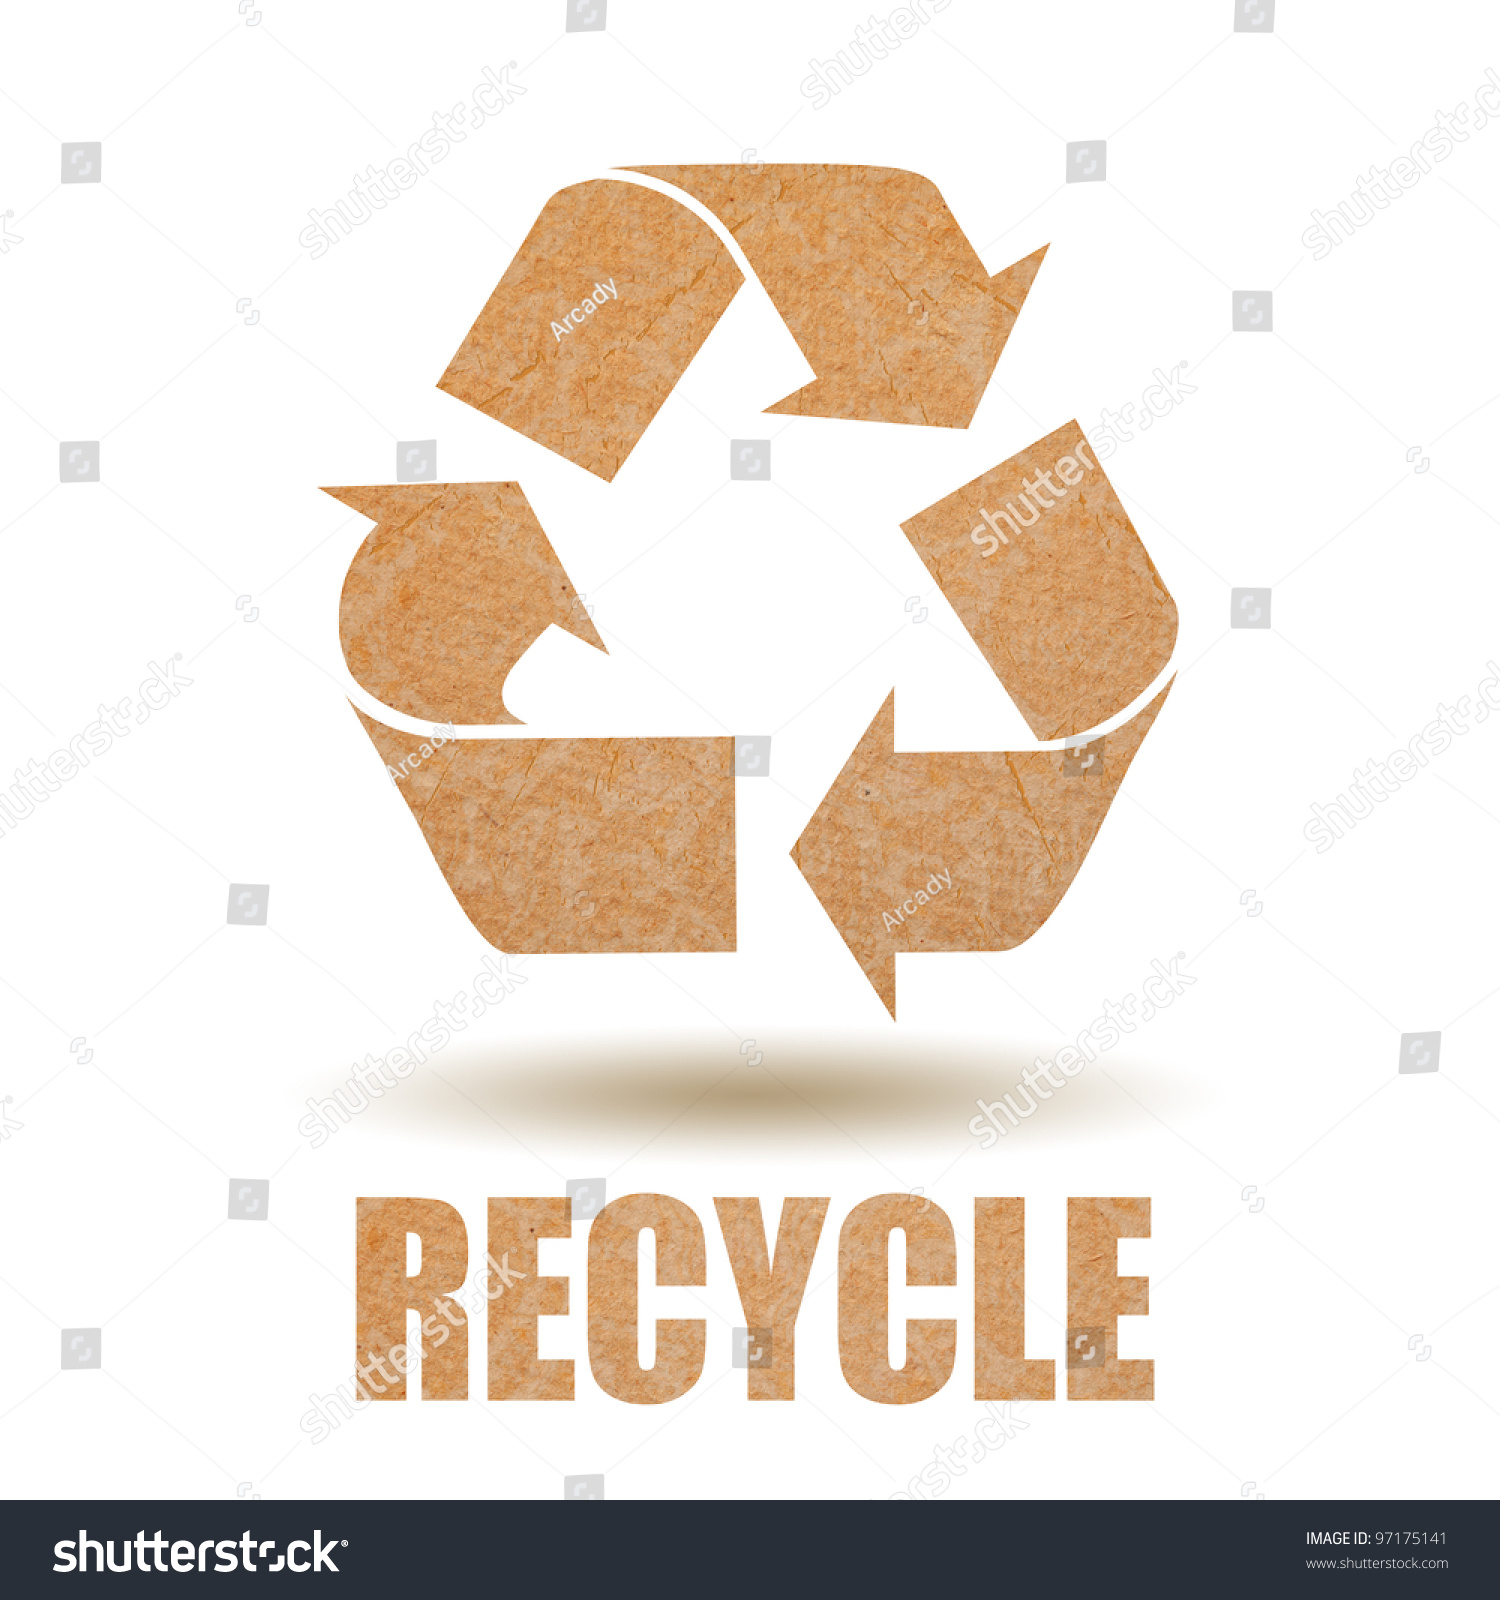 Recycle paper symbol stock photo 97175141 shutterstock recycle paper symbol buycottarizona